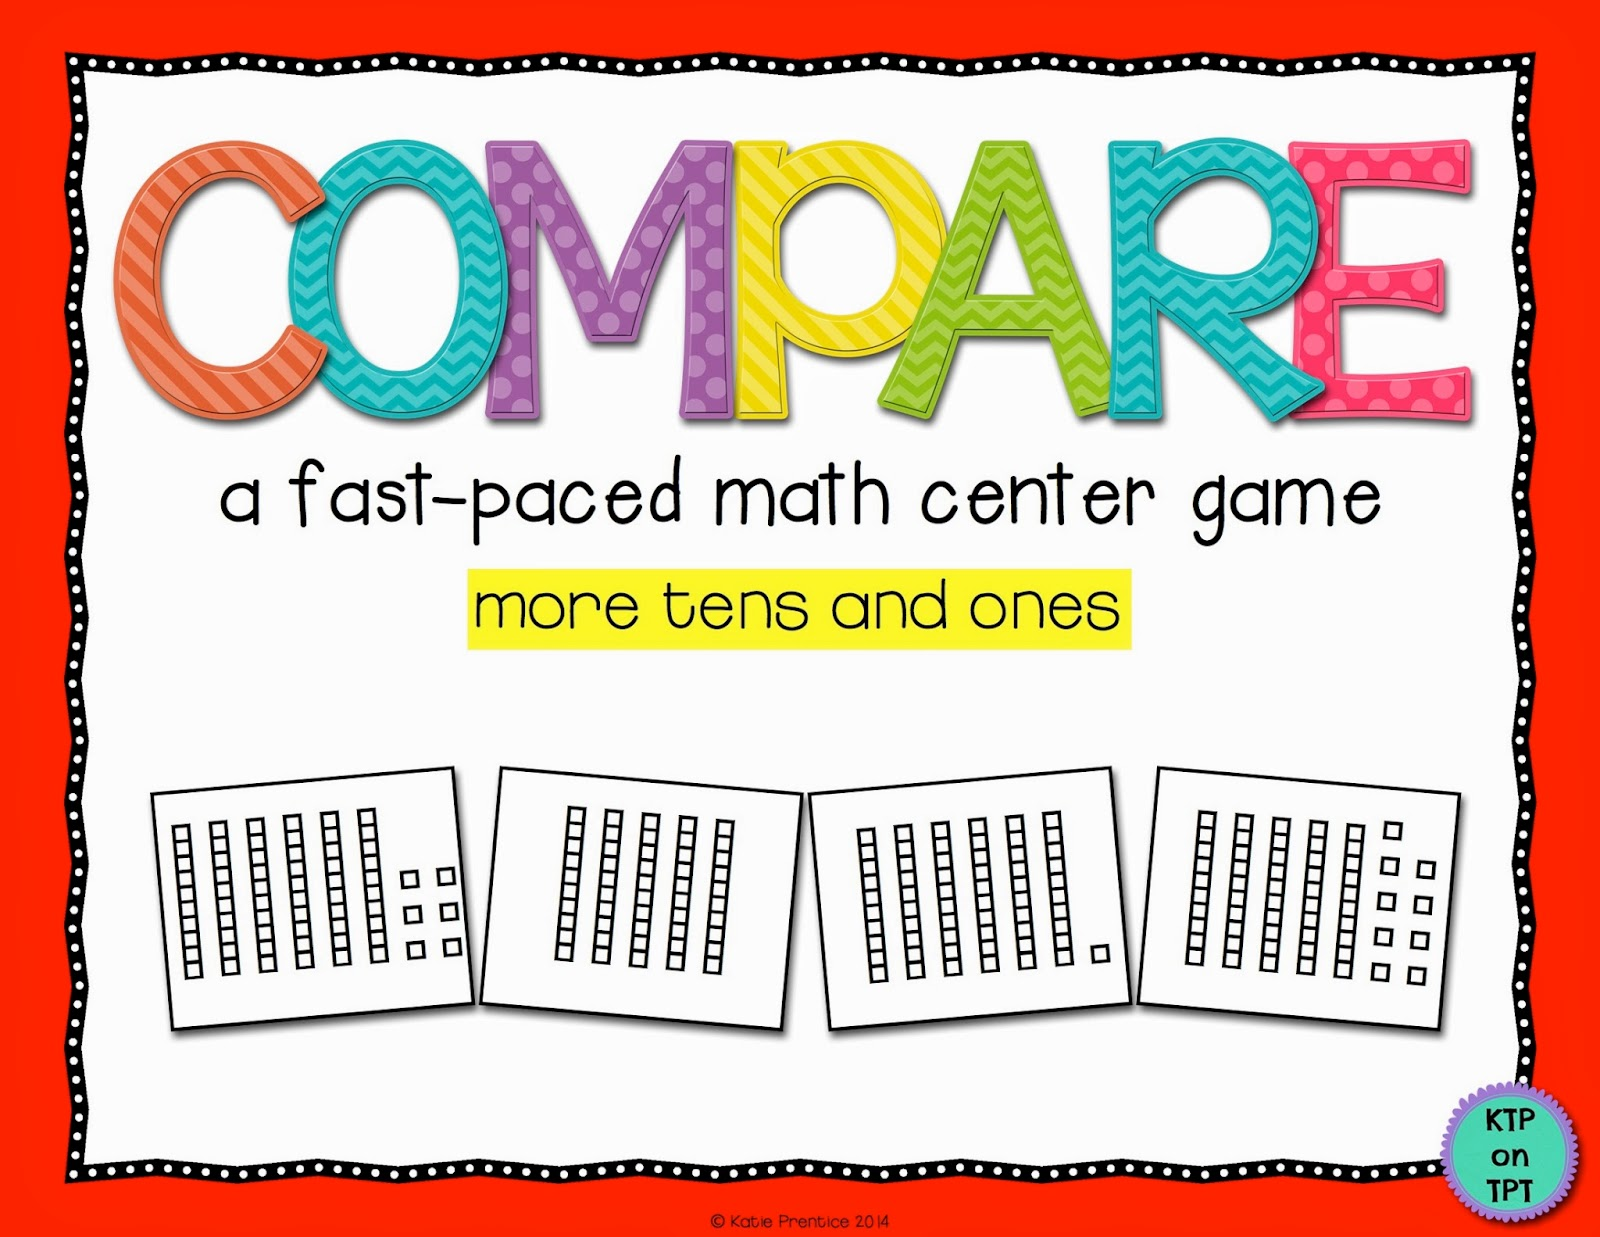 http://www.teacherspayteachers.com/Product/Compare-MORE-tens-and-ones-game-for-math-centers-1142063